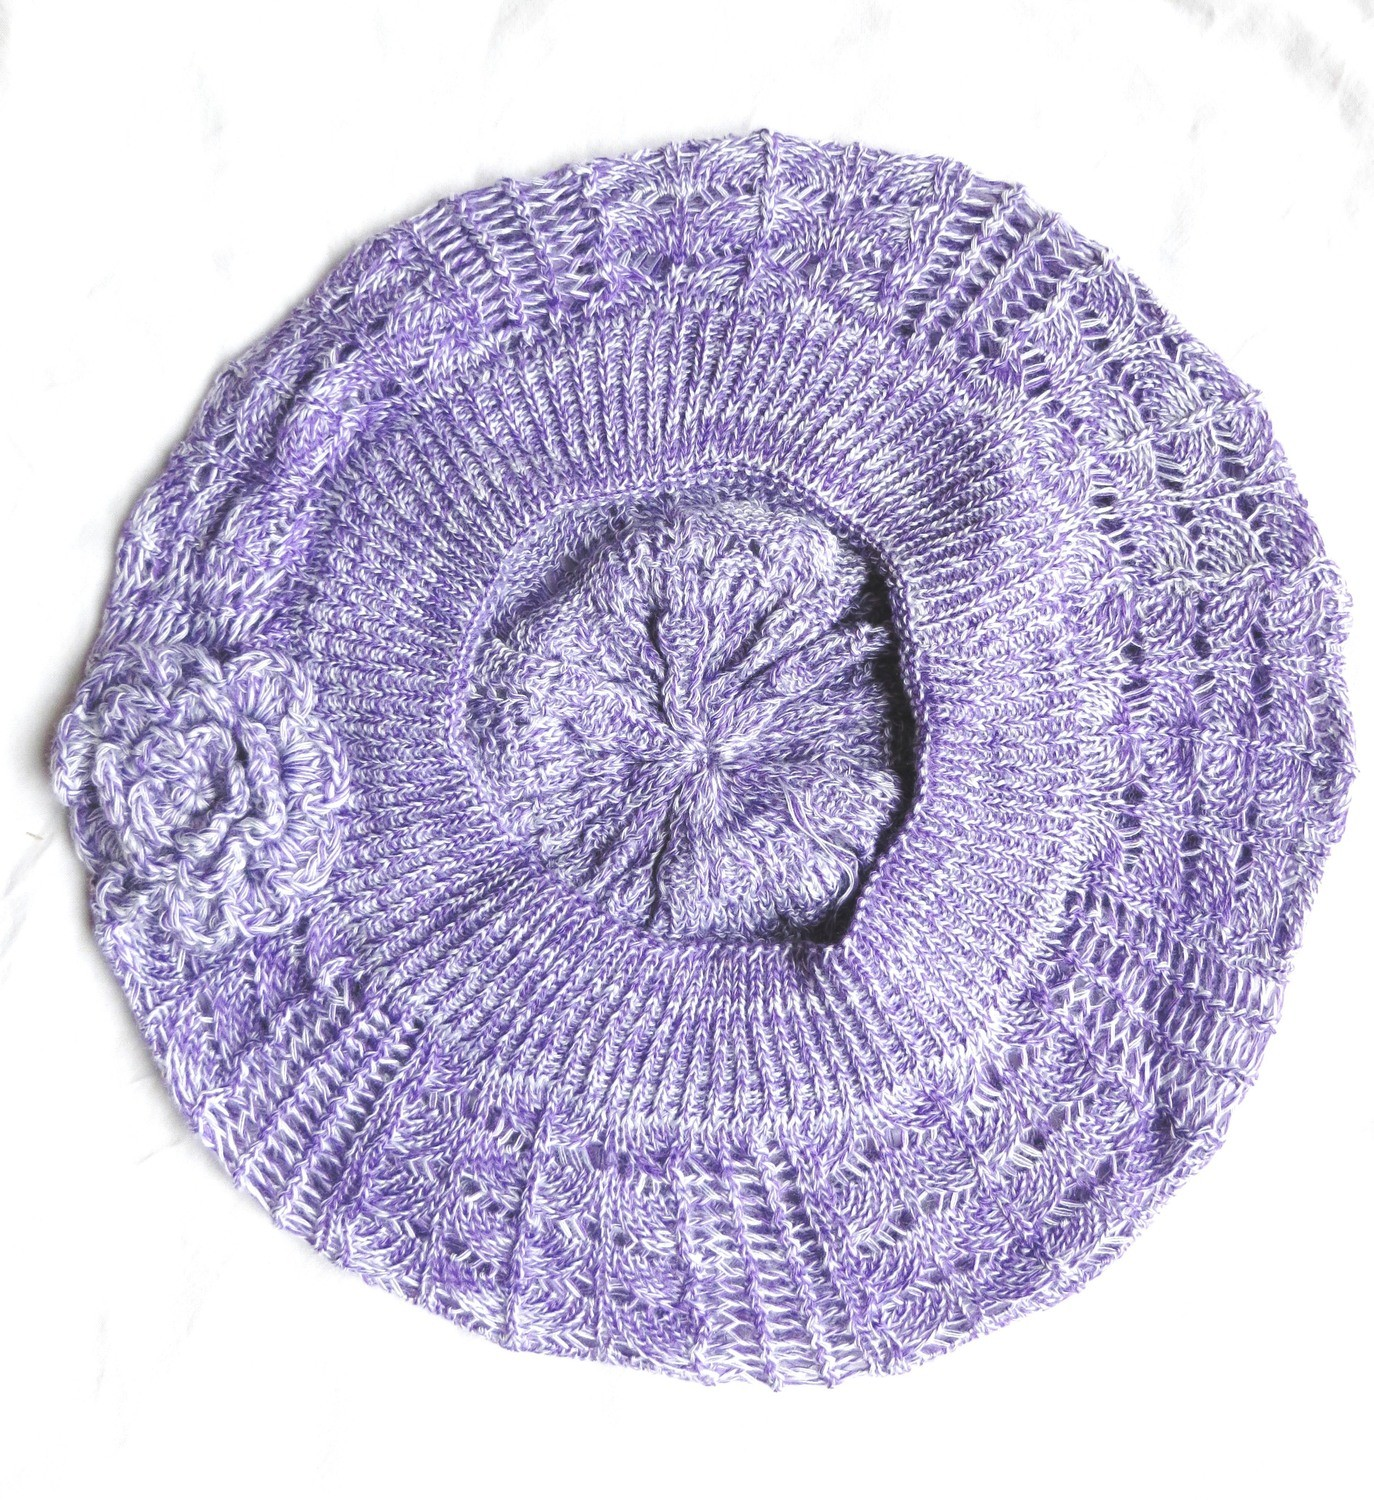 Lavender and white summer beret with flower